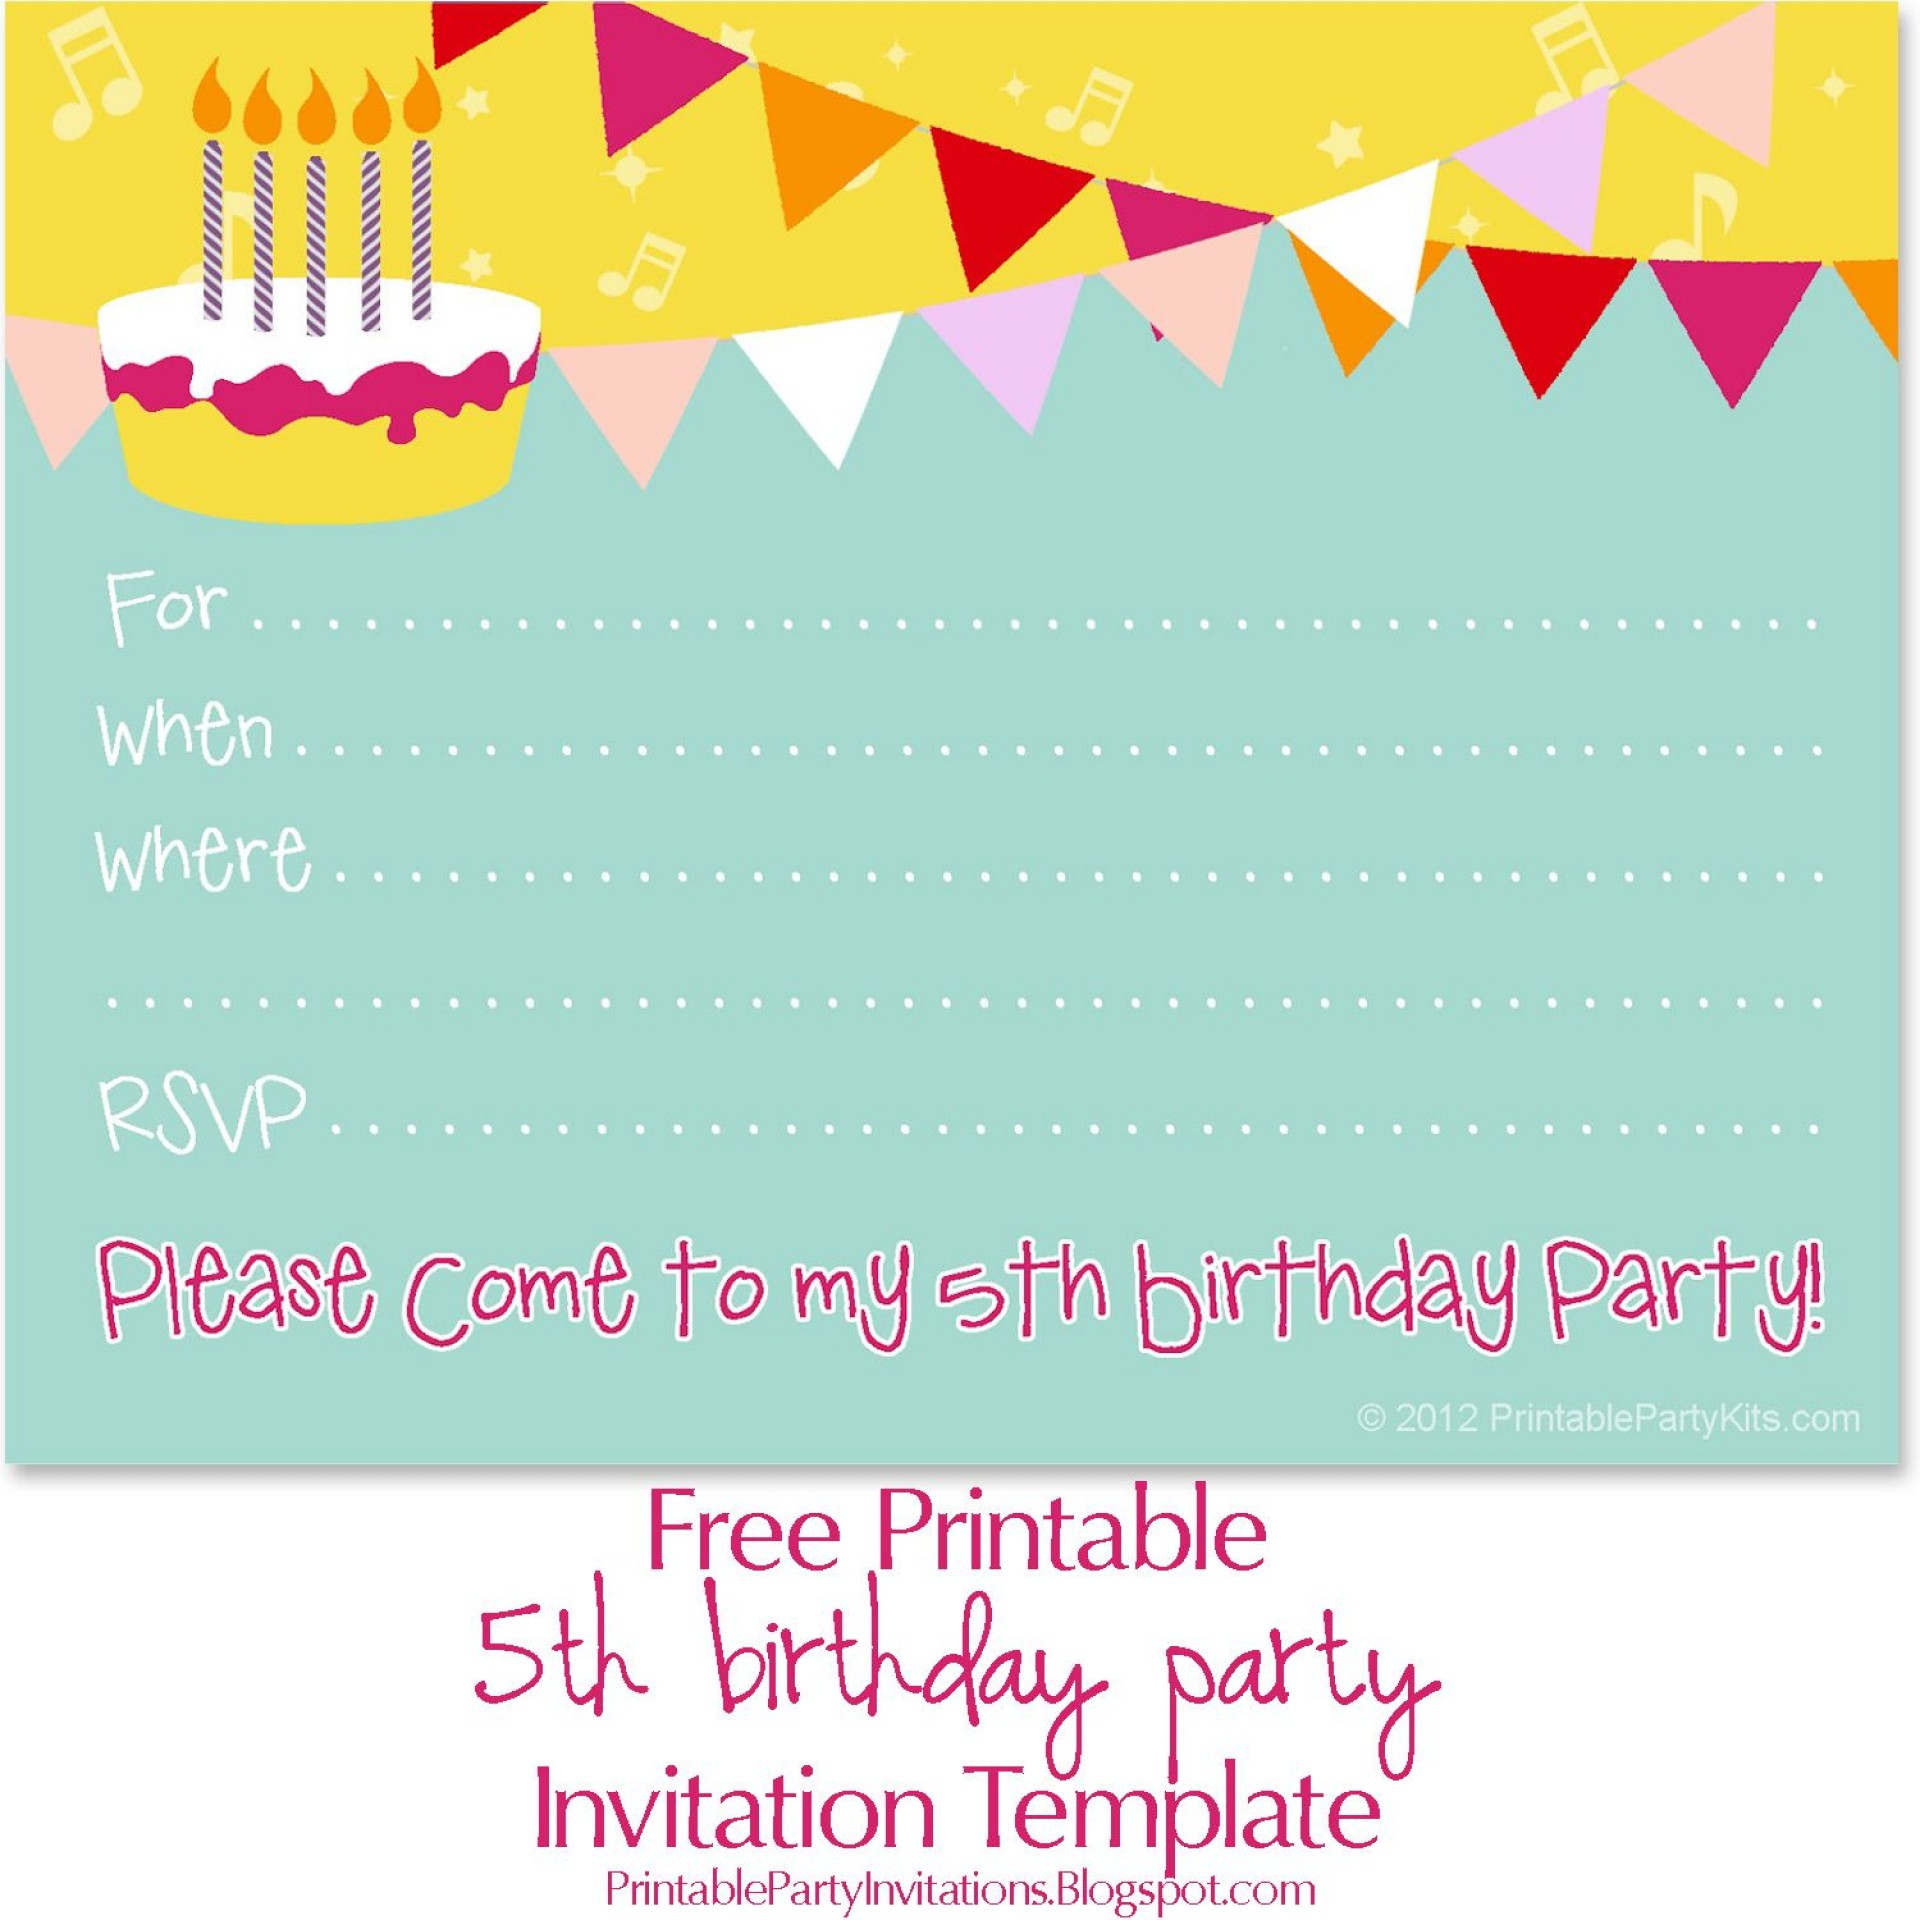 001 Amazing Birthday Invitation Template Free Download Idea  Editable Video Twin First Downloadable 18th Printable1920